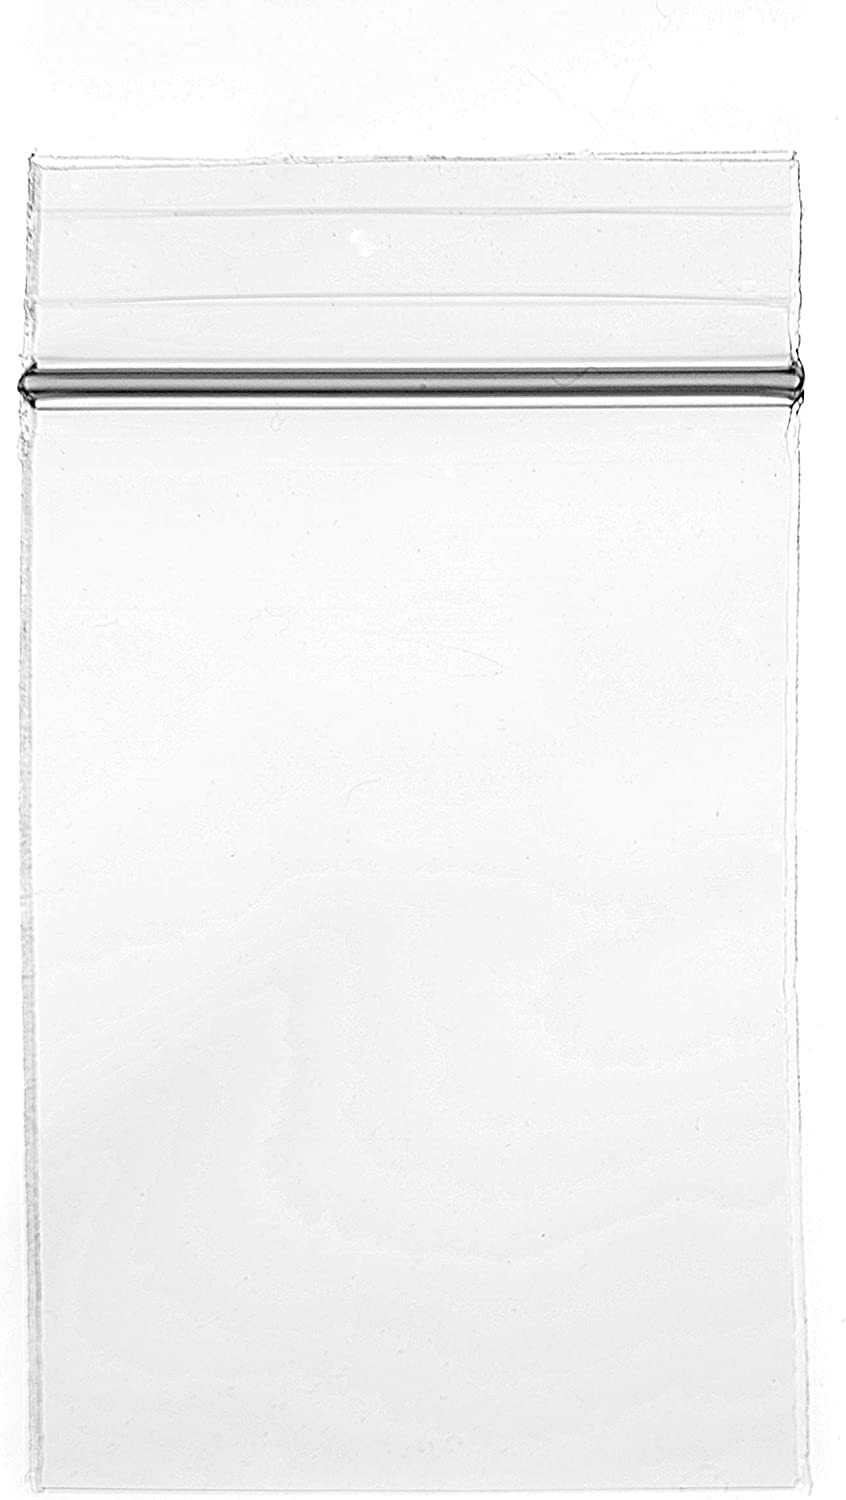 """Clear Reclosable Zip Lock Bag 1.5/"""" x 1.5/"""" Polyethylene 2 Mil Pack of 1000 Pieces"""